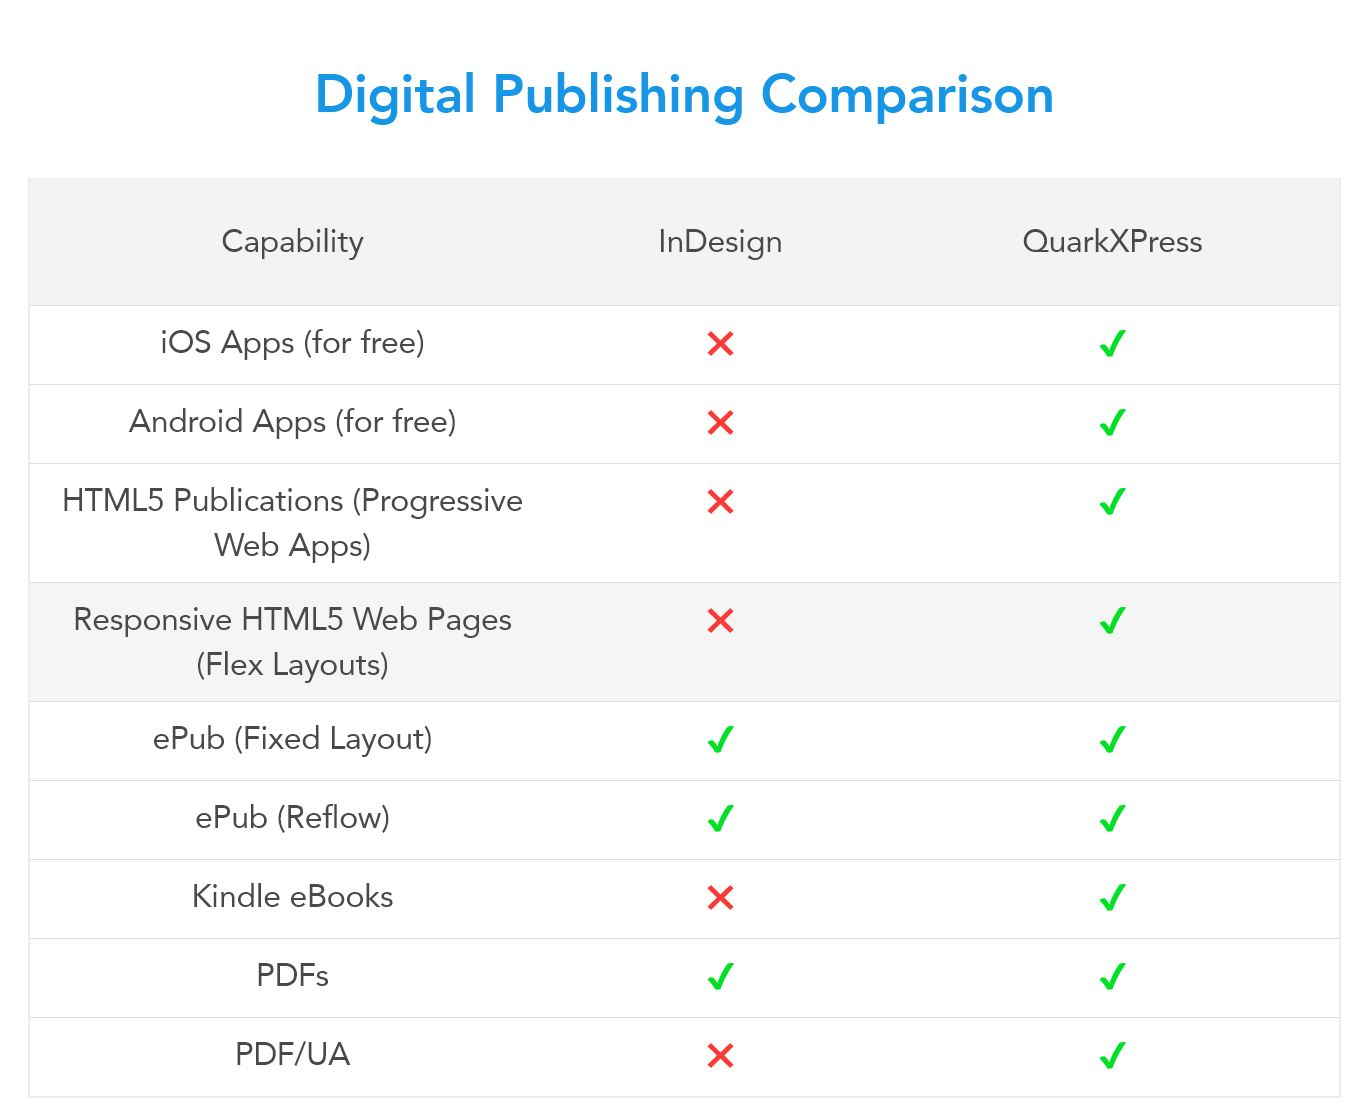 comparativa entre Indesign y Quark Xpress